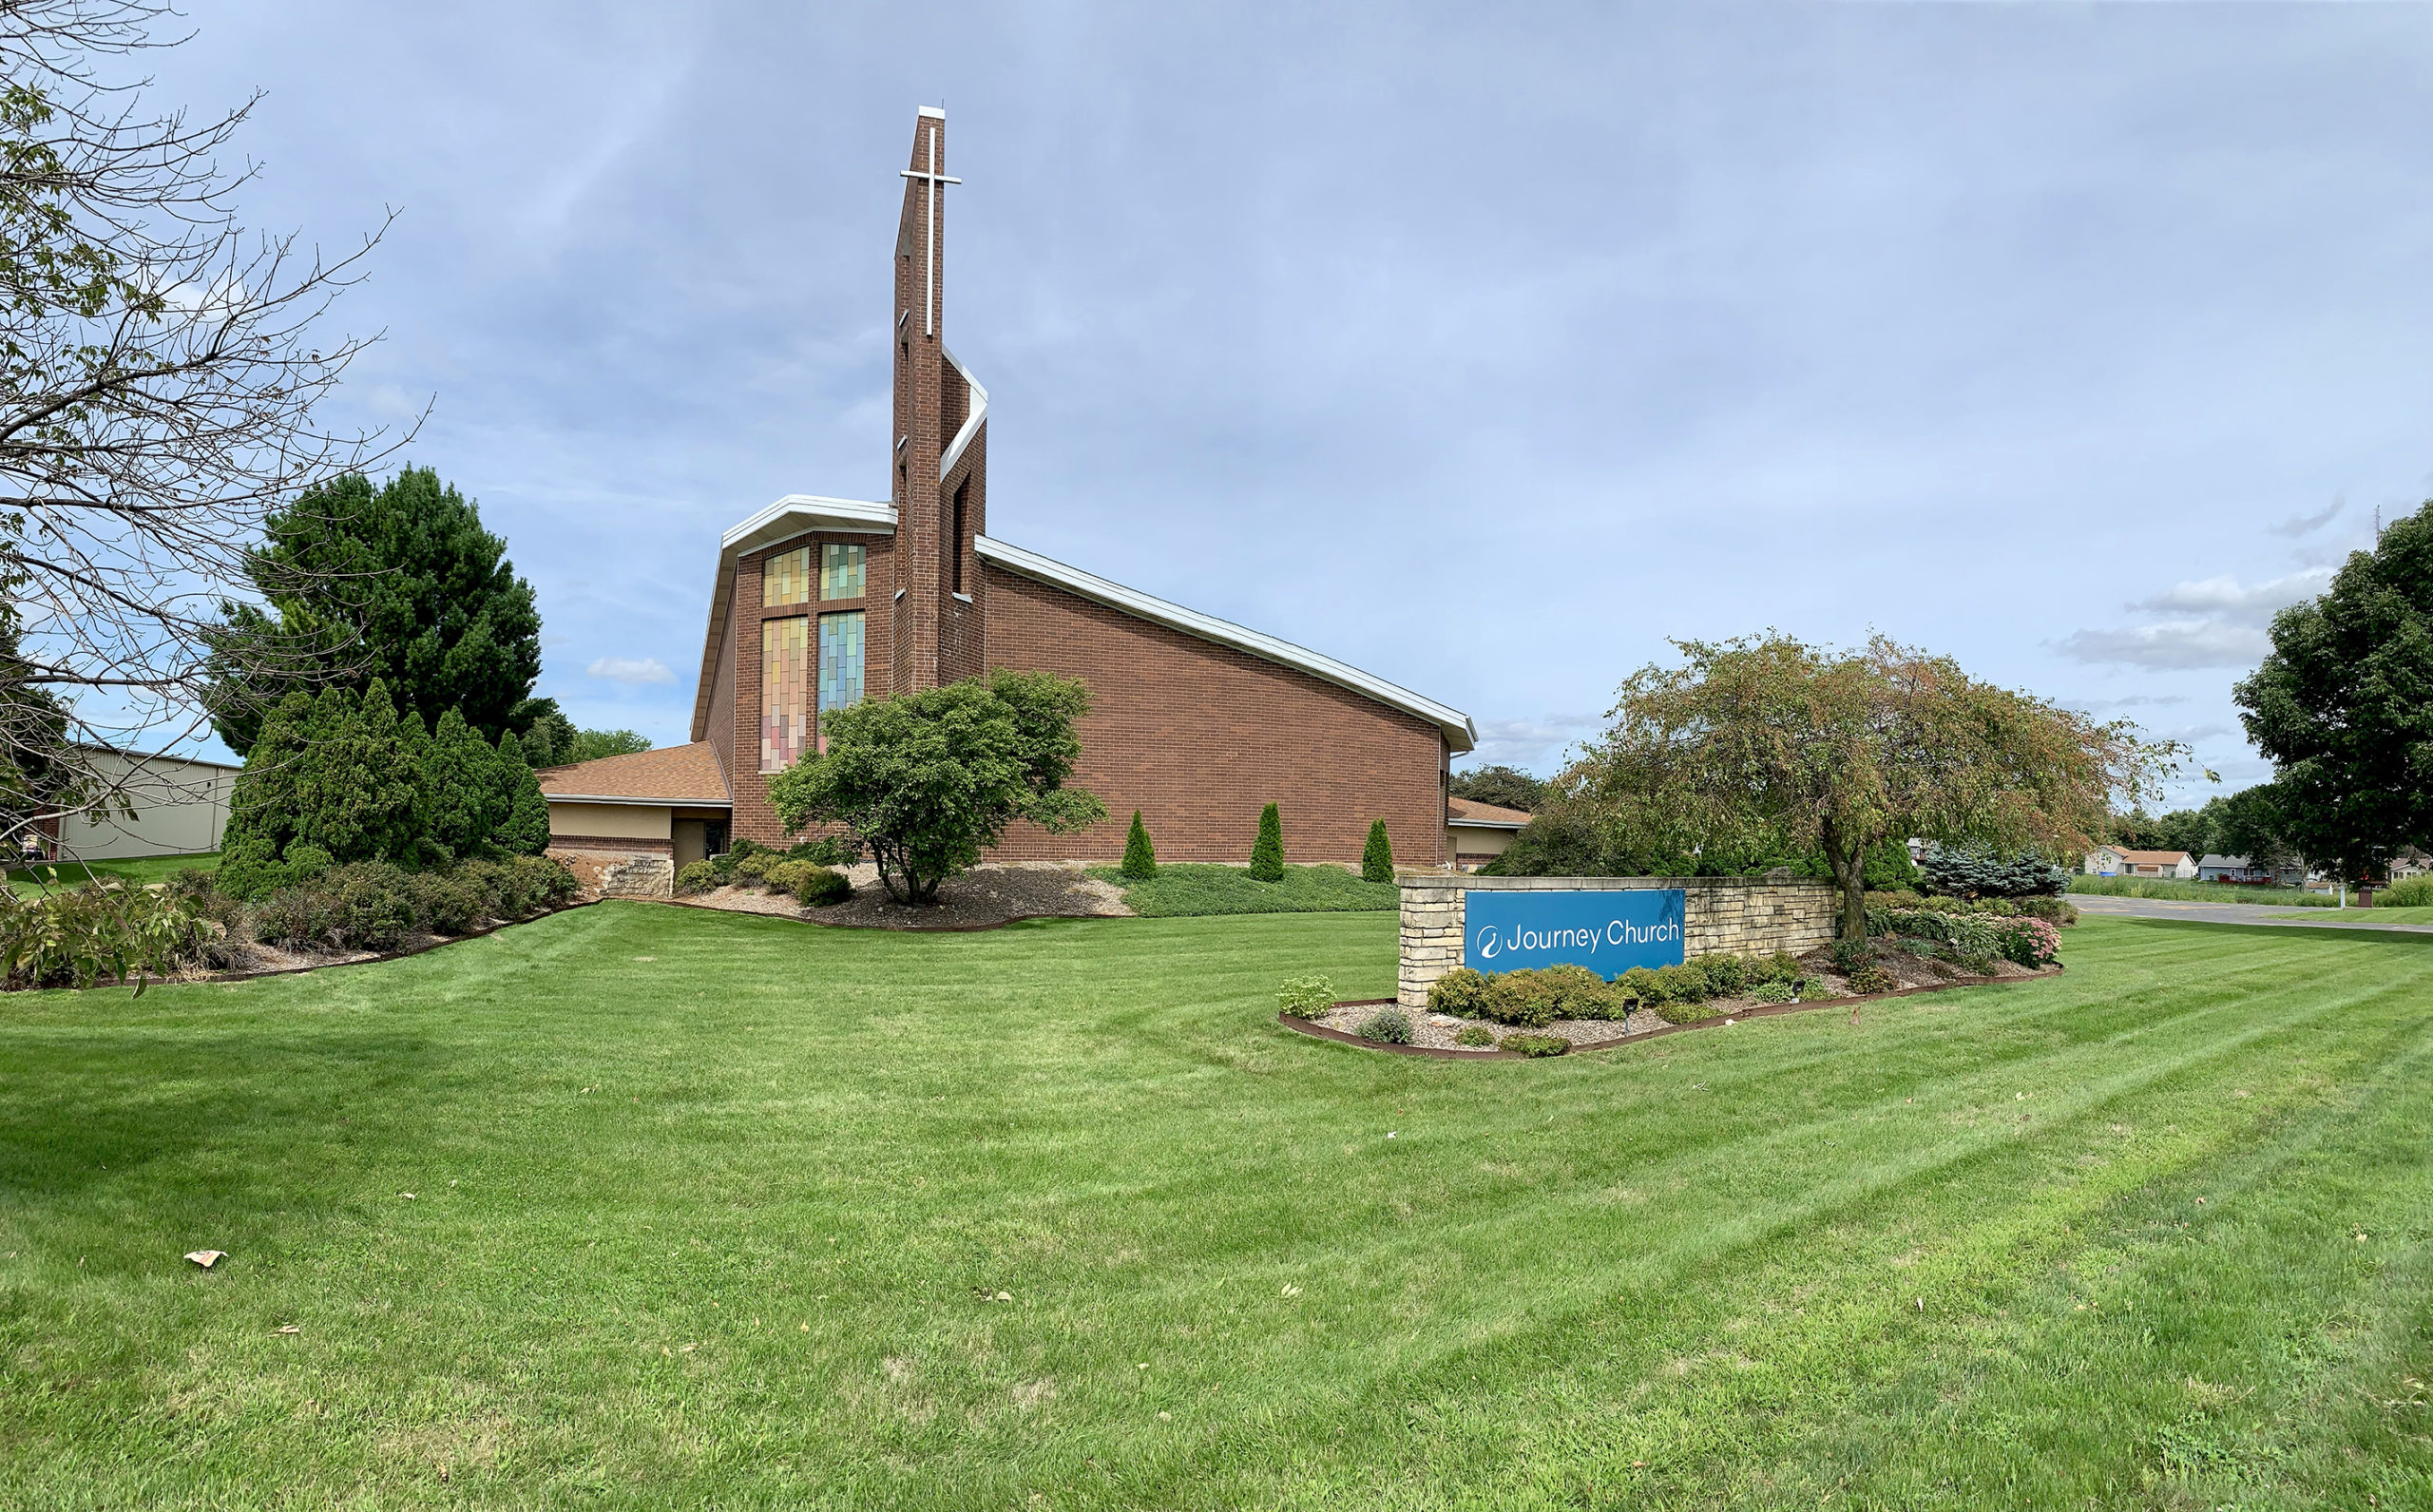 Journey Church front image - history page usage